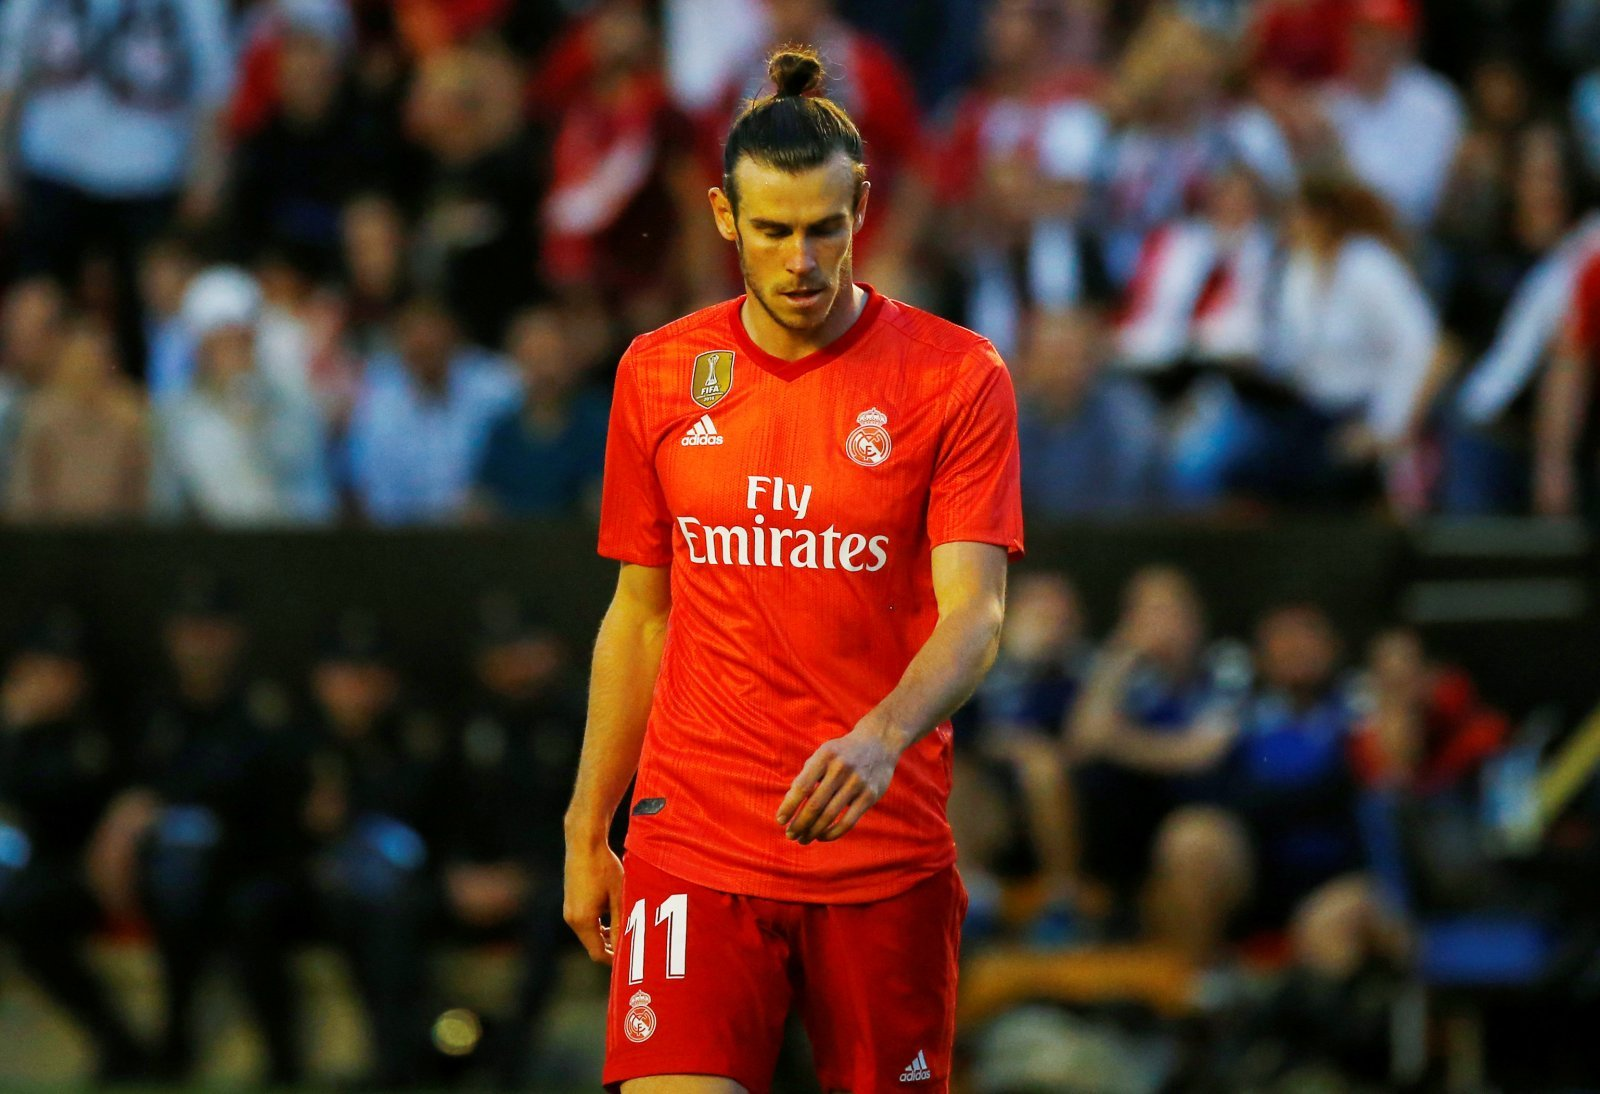 Real Madrid: Zinedine Zidane surprised about Gareth Bale returning to London while the team played in the UCL